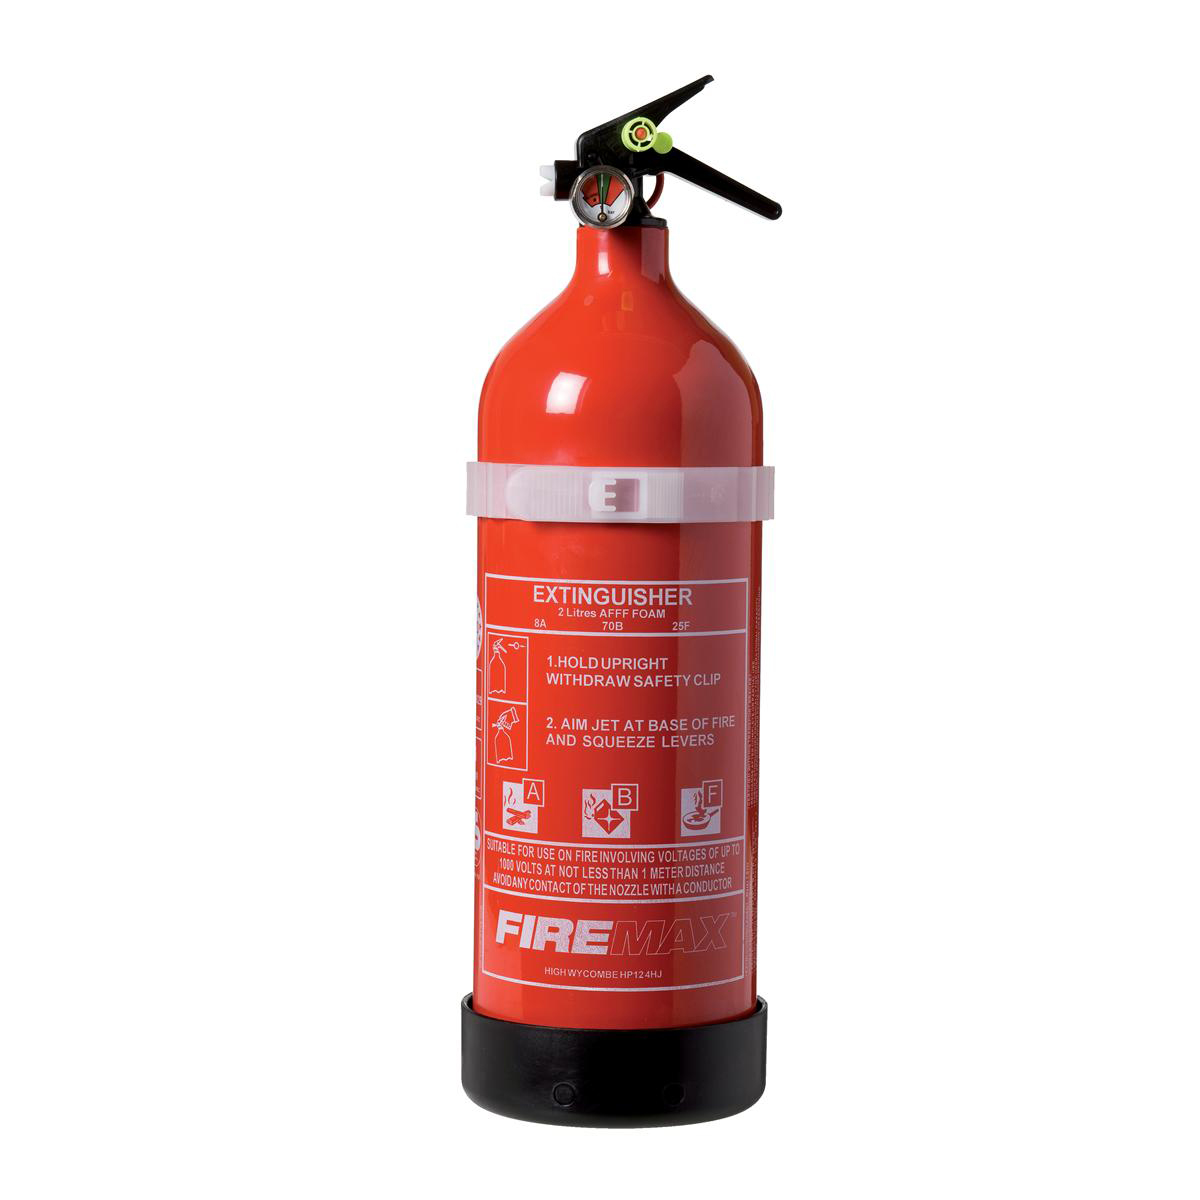 IVG 2.0LTR Foam Fire Extinguisher for Class A and B Fires Ref WG10130